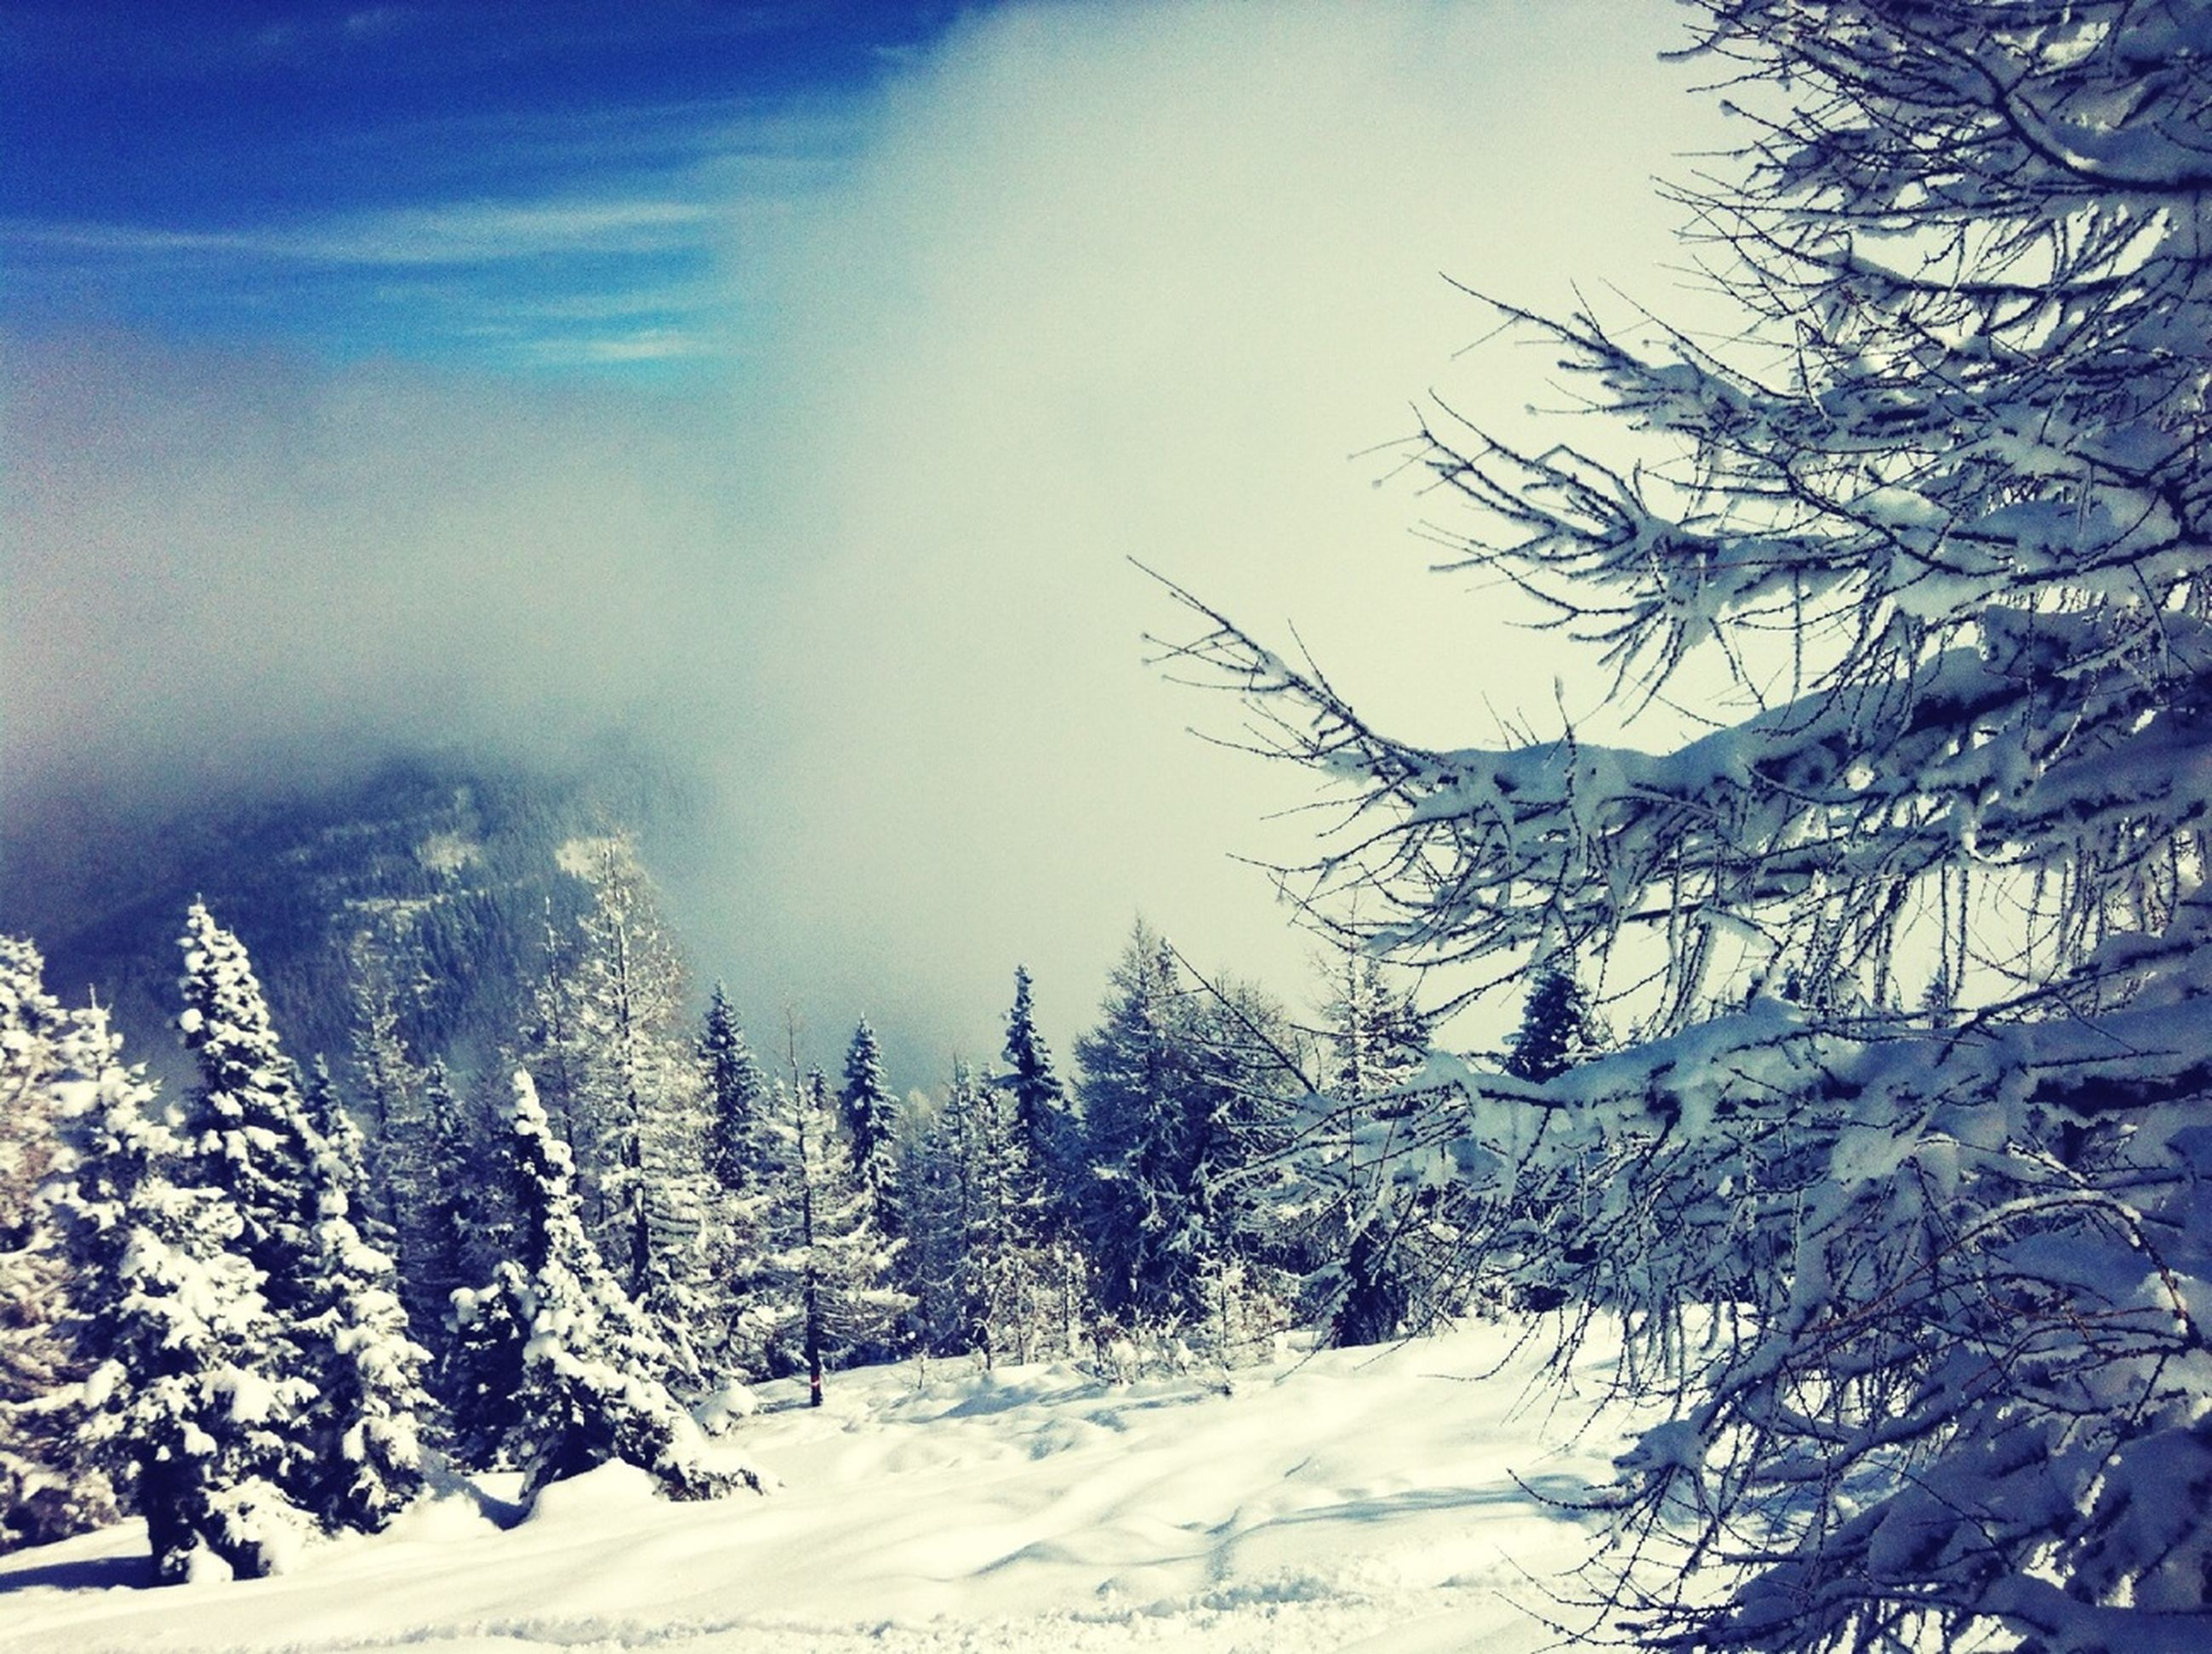 snow, winter, cold temperature, season, weather, covering, tree, tranquil scene, tranquility, scenics, beauty in nature, landscape, nature, sky, frozen, white color, mountain, snowcapped mountain, covered, bare tree